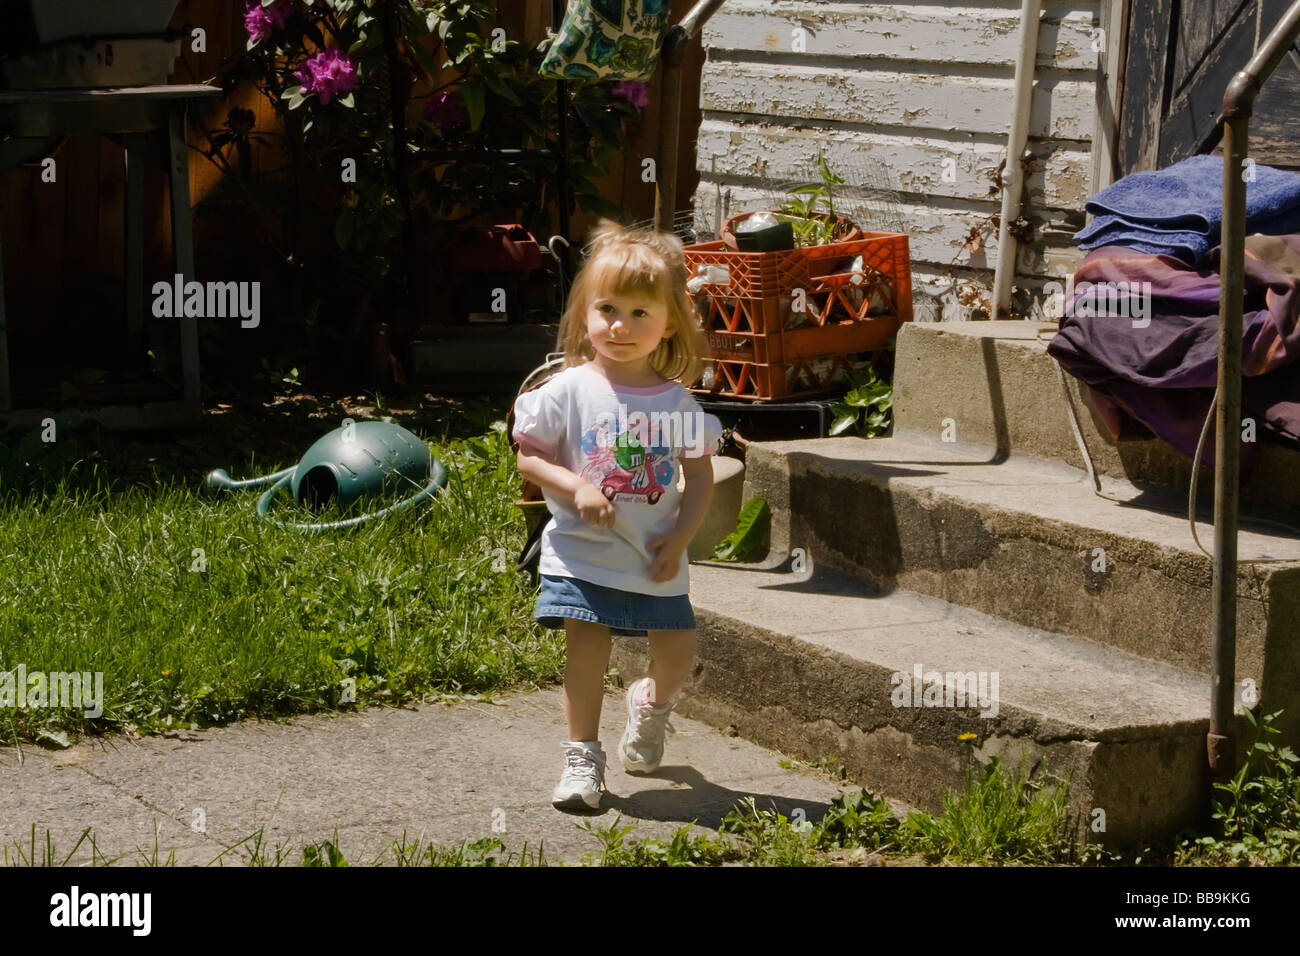 Little girl on the move - Stock Image